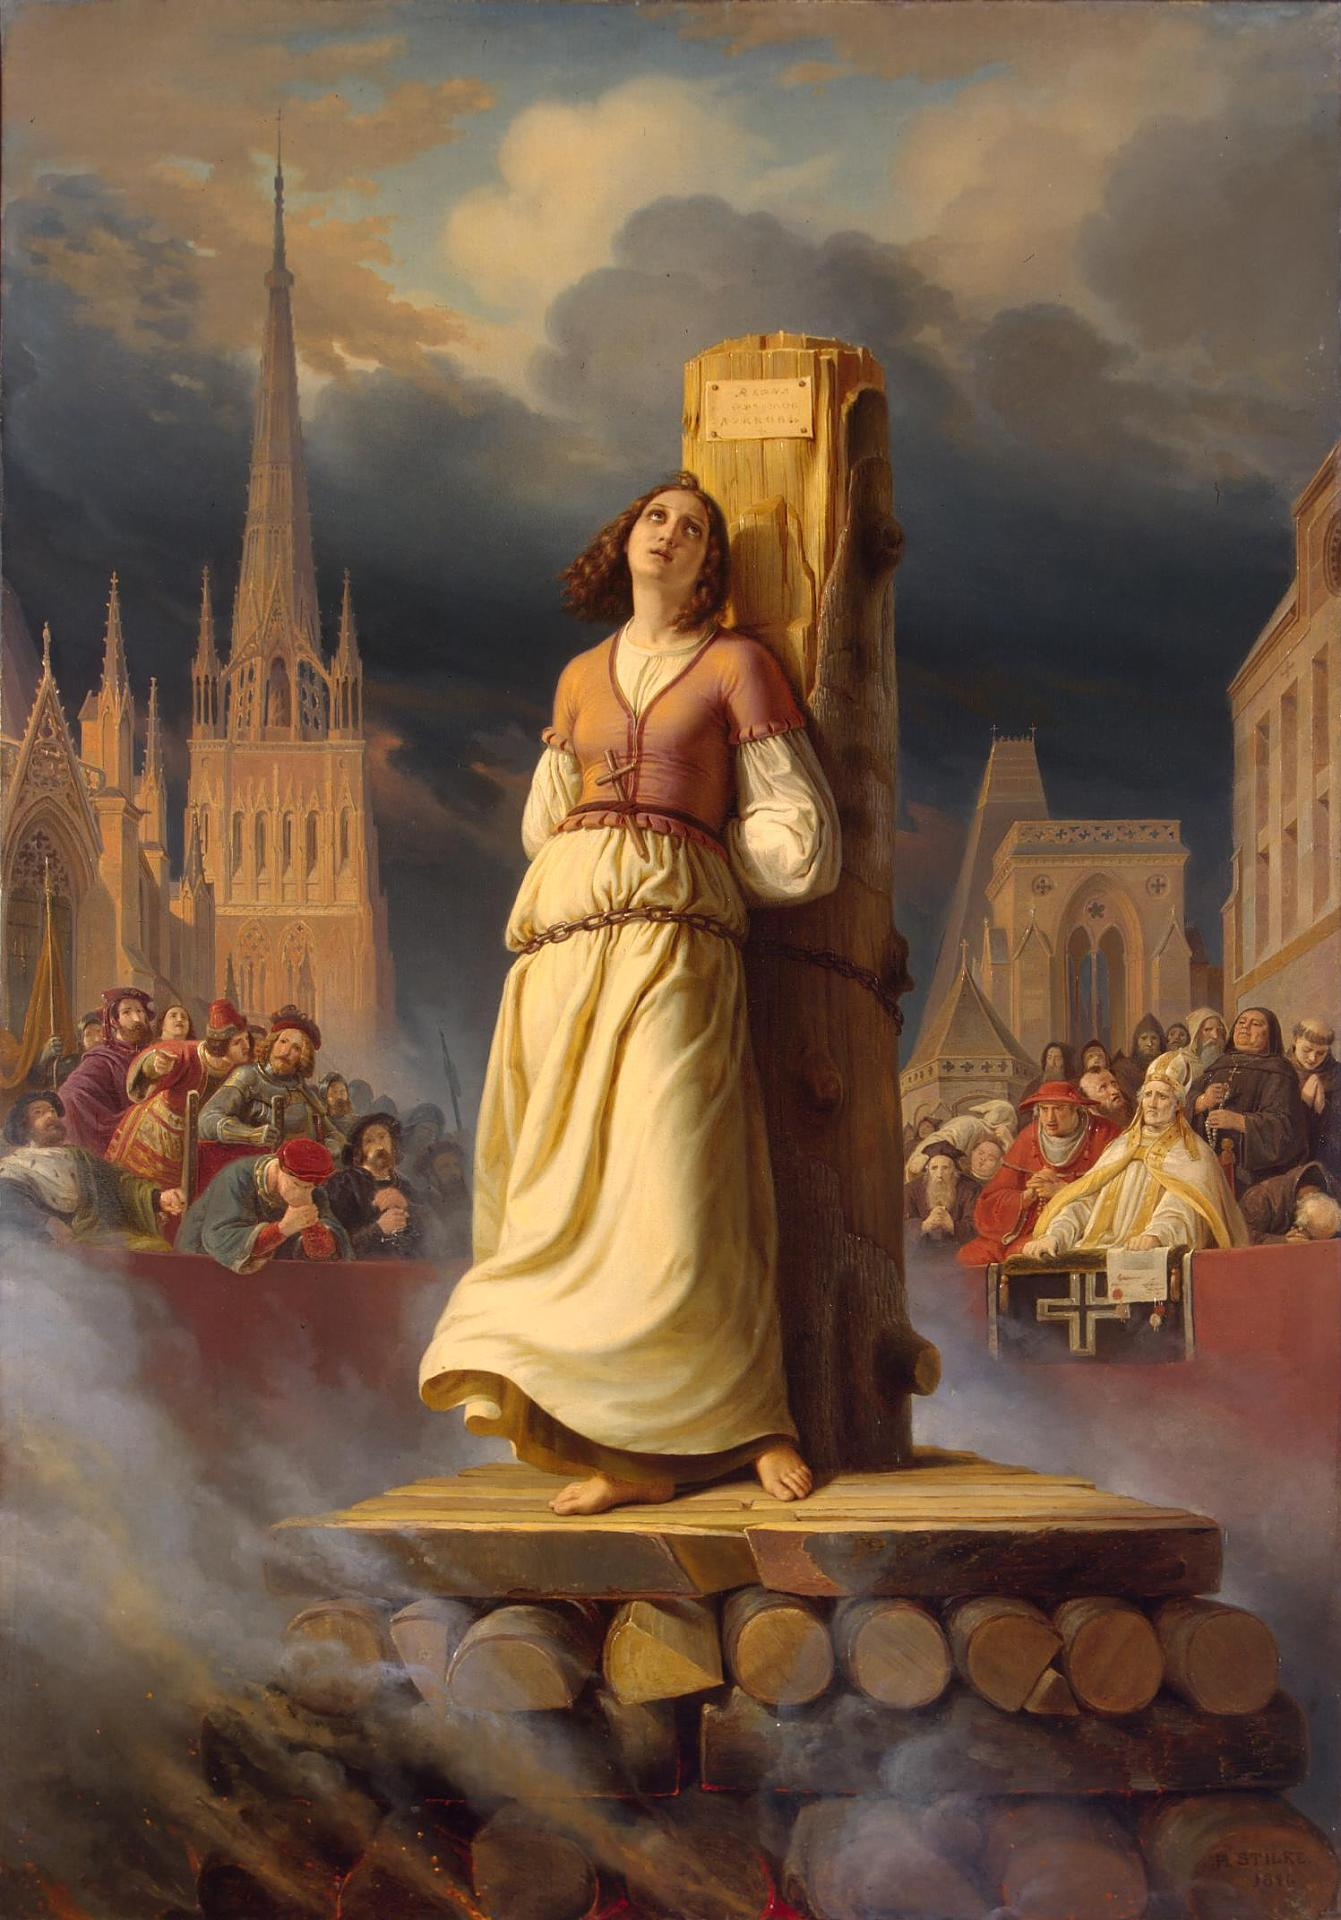 Joan of Arc's Death at the Stake by Hermann Stilke, oil on canvas, 1843. Right-hand part of The Life of Joan of Arc Triptych in room 350 of the General Staff Building at the State Hermitage Museum (Госуда́рственный Эрмита́ж) in Saint Petersburg, Russia.